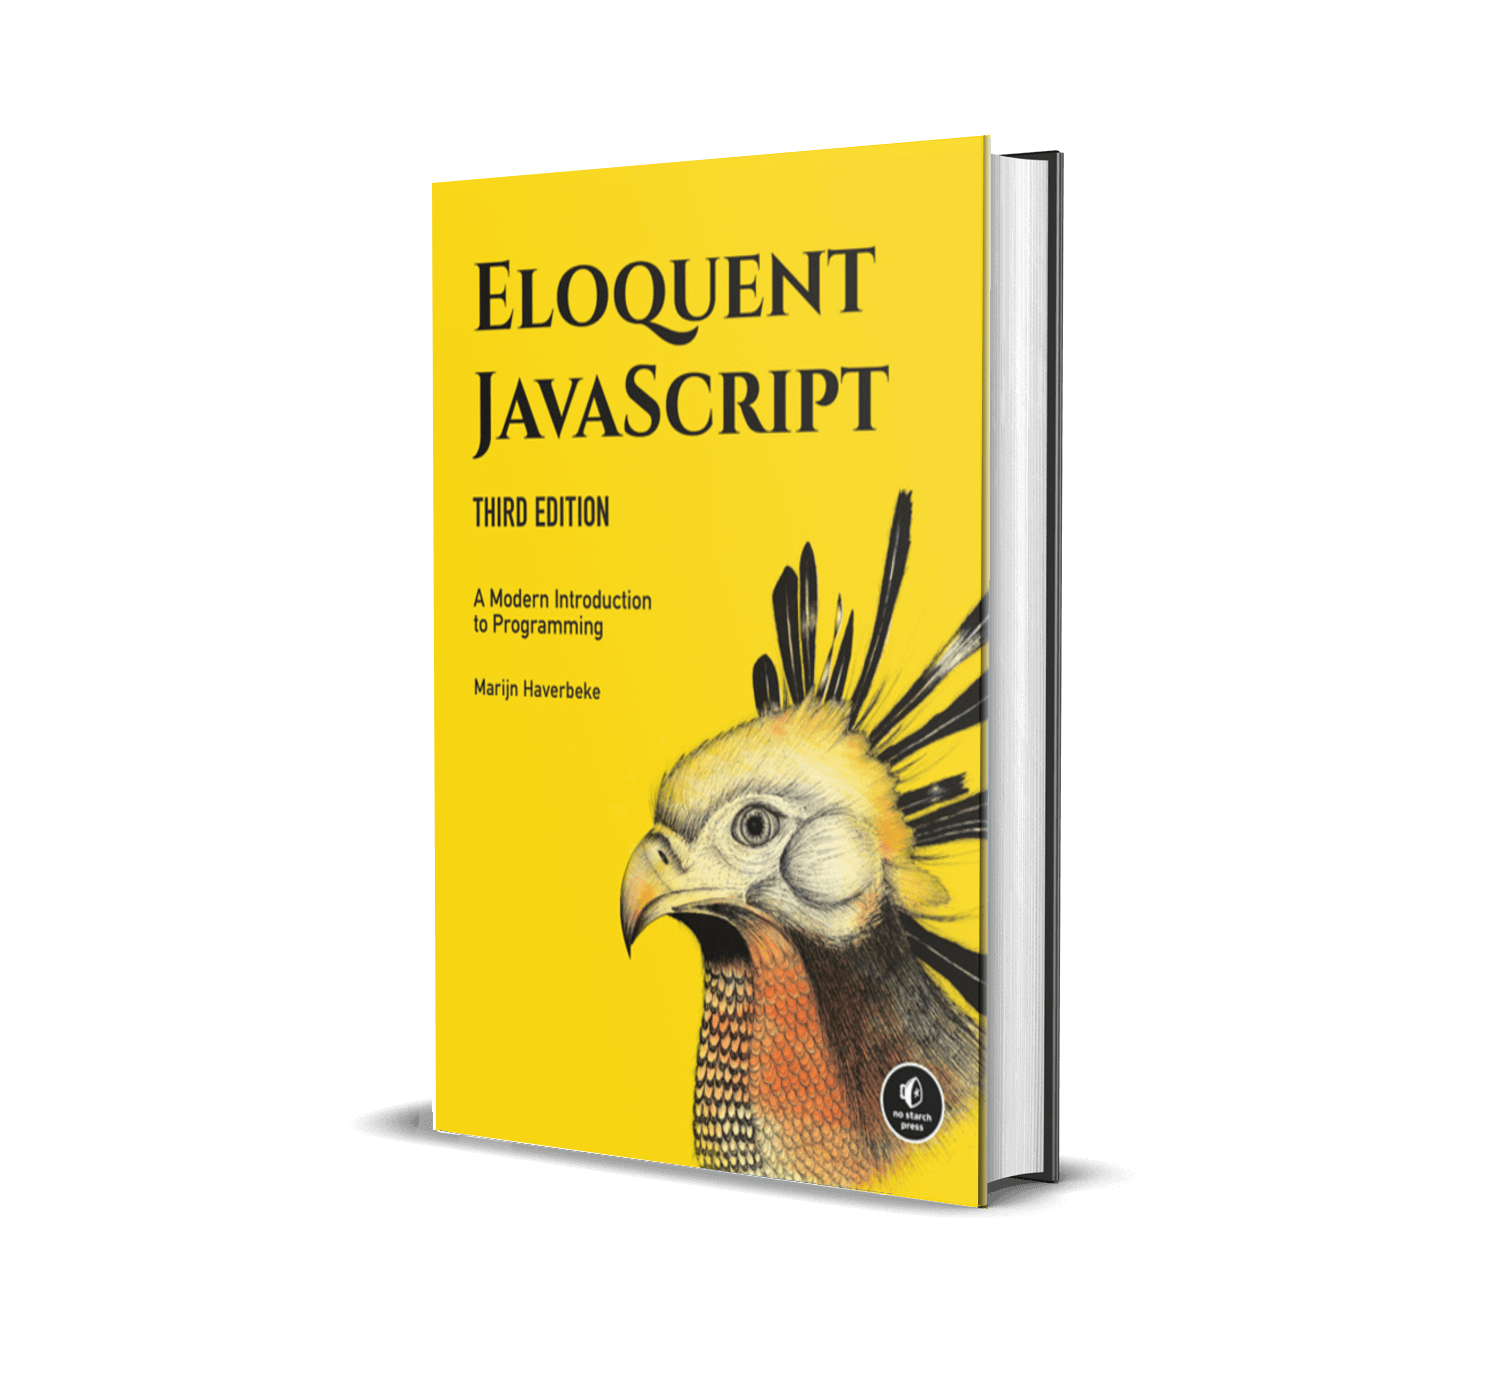 """Best Book for Intermediate Coders: Eloquent Javascript - Eloquent Javascript 3rd edition covers a rare territory: it is not for complete beginners. It can benefit programmers who have been coding for years. In a market saturated with programming books for beginners, Eloquent Javascript is refreshing. It gets you to think deeper about the """"why"""" and re-kindles excitement for the craft.""""Like a warm cup of tea on a cold winter day,"""" reading Eloquent Javascript is like cracking open a magical spell book."""